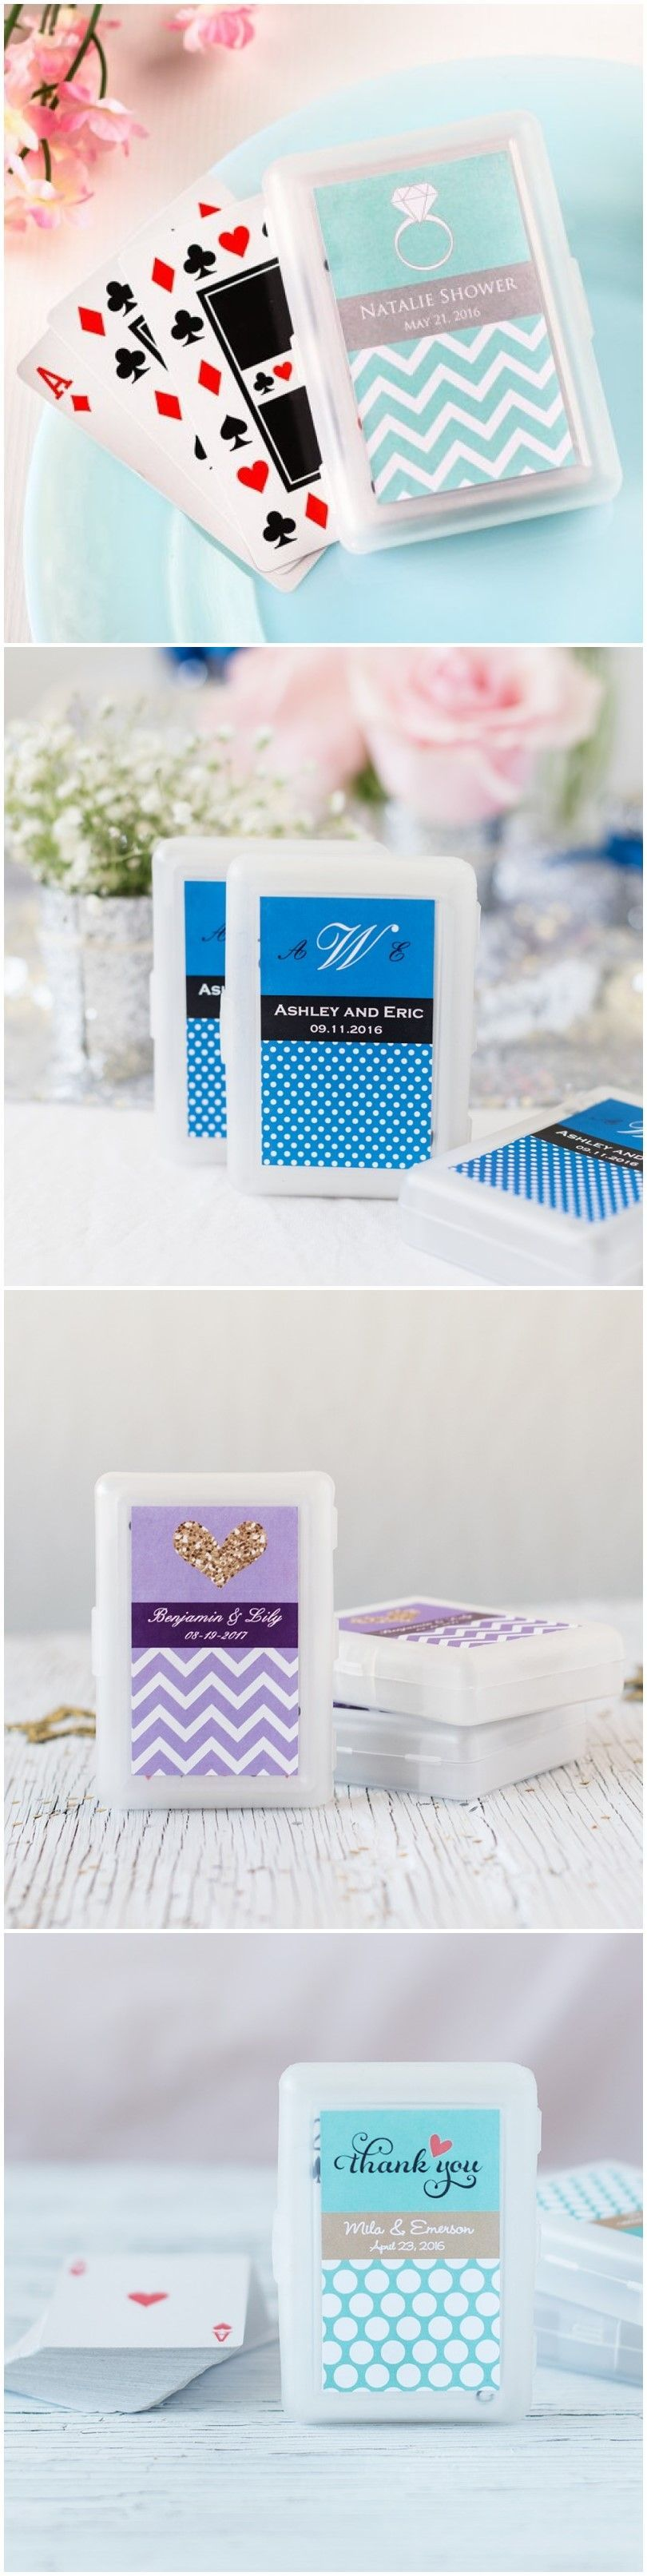 20 Unique and Cheap Wedding Favor Ideas Under $2 | Favors, Wedding ...